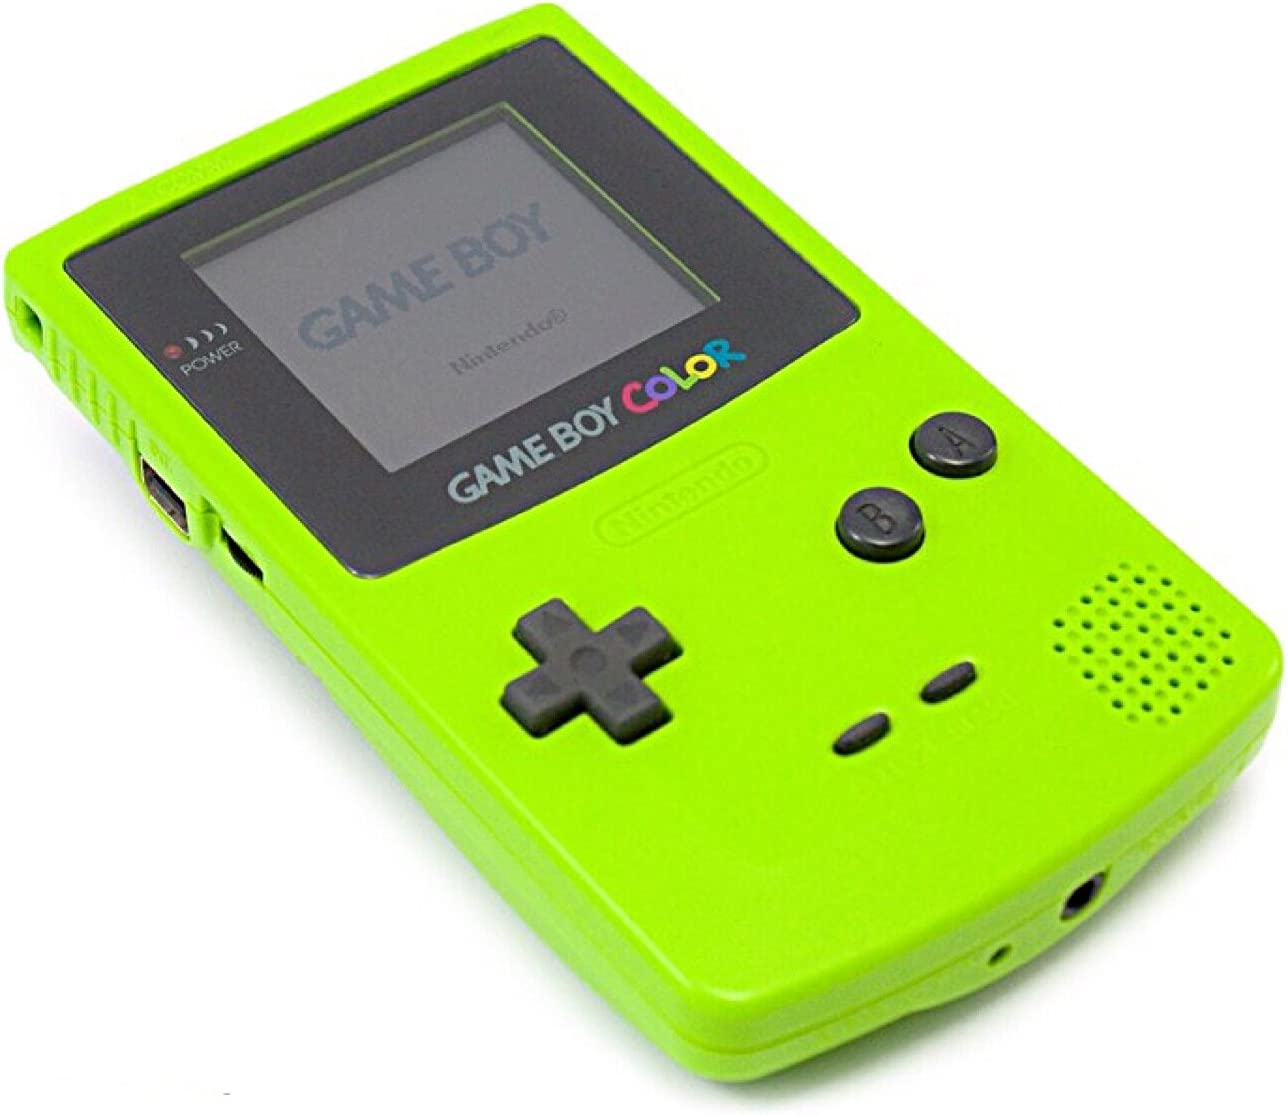 can super gameboy play gameboy color games